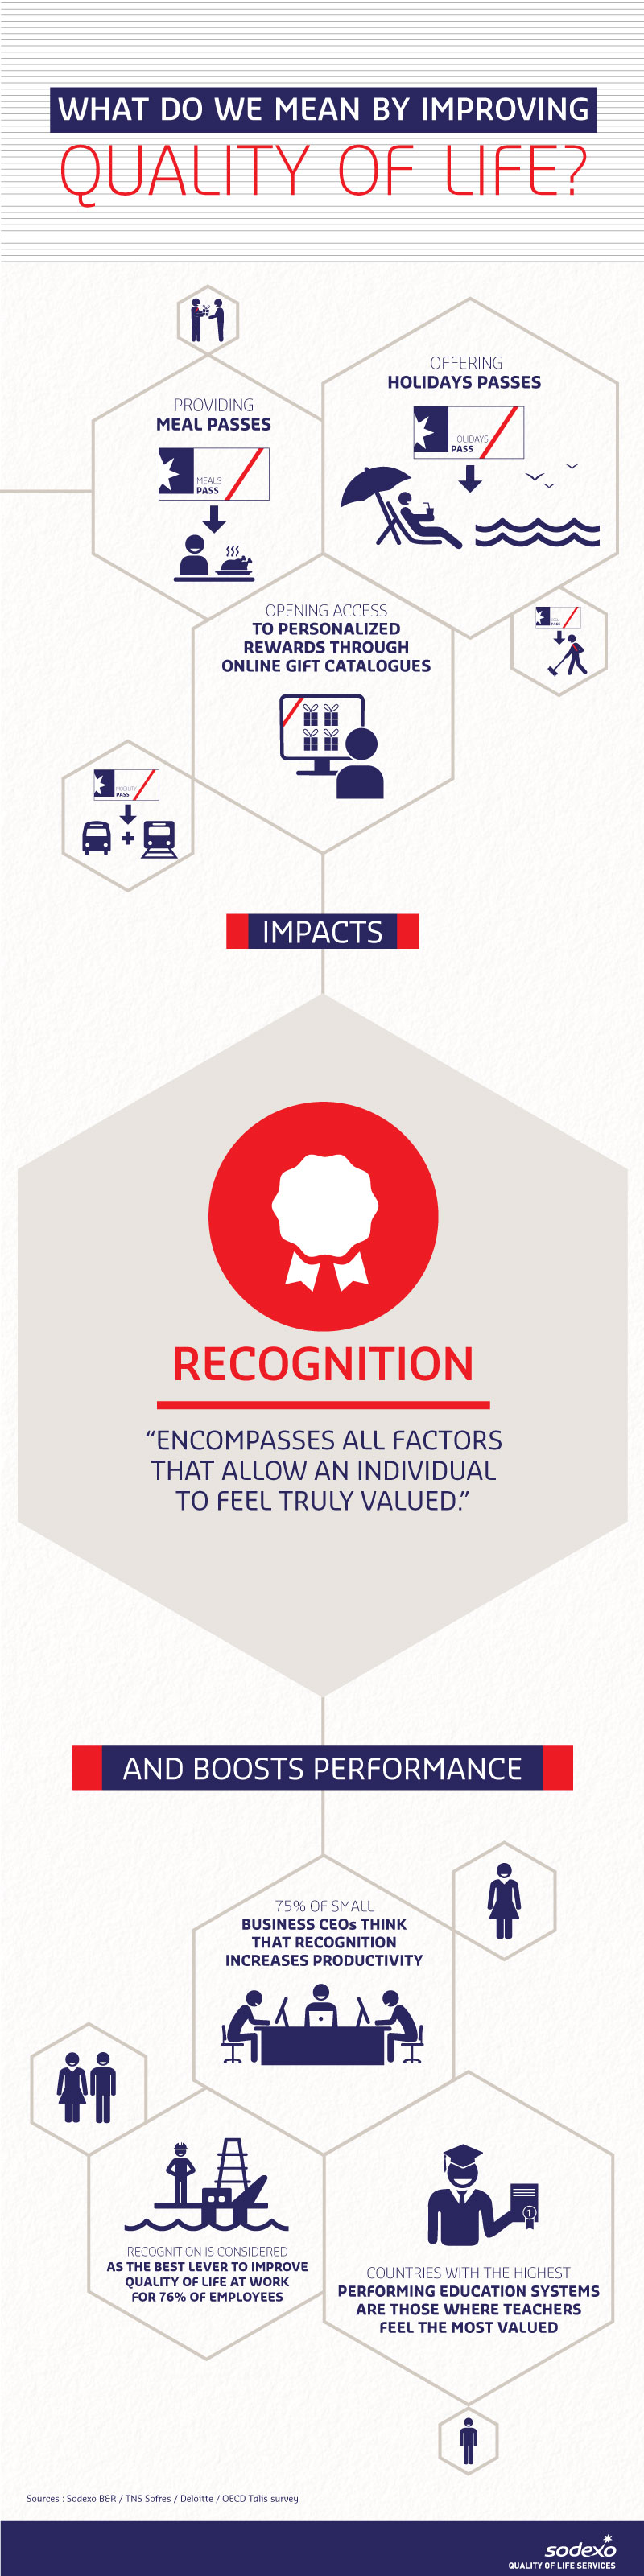 Recognition_EN.jpg (Quality of Life Dimension - Recognition (infographic))